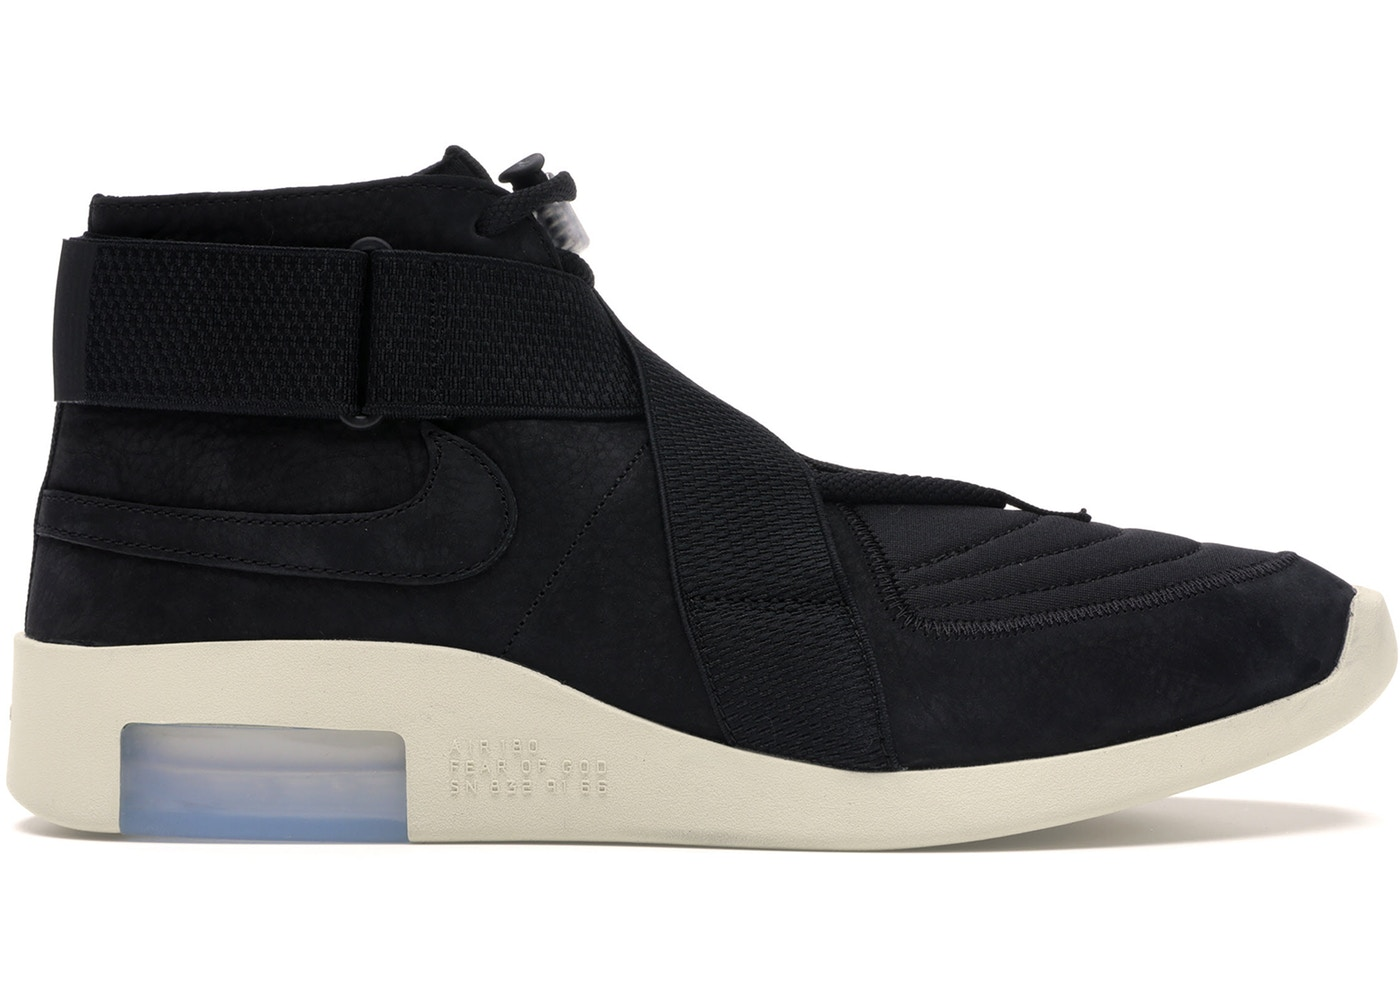 Nike-Air-Fear-Of-God-Strap-Black-Product